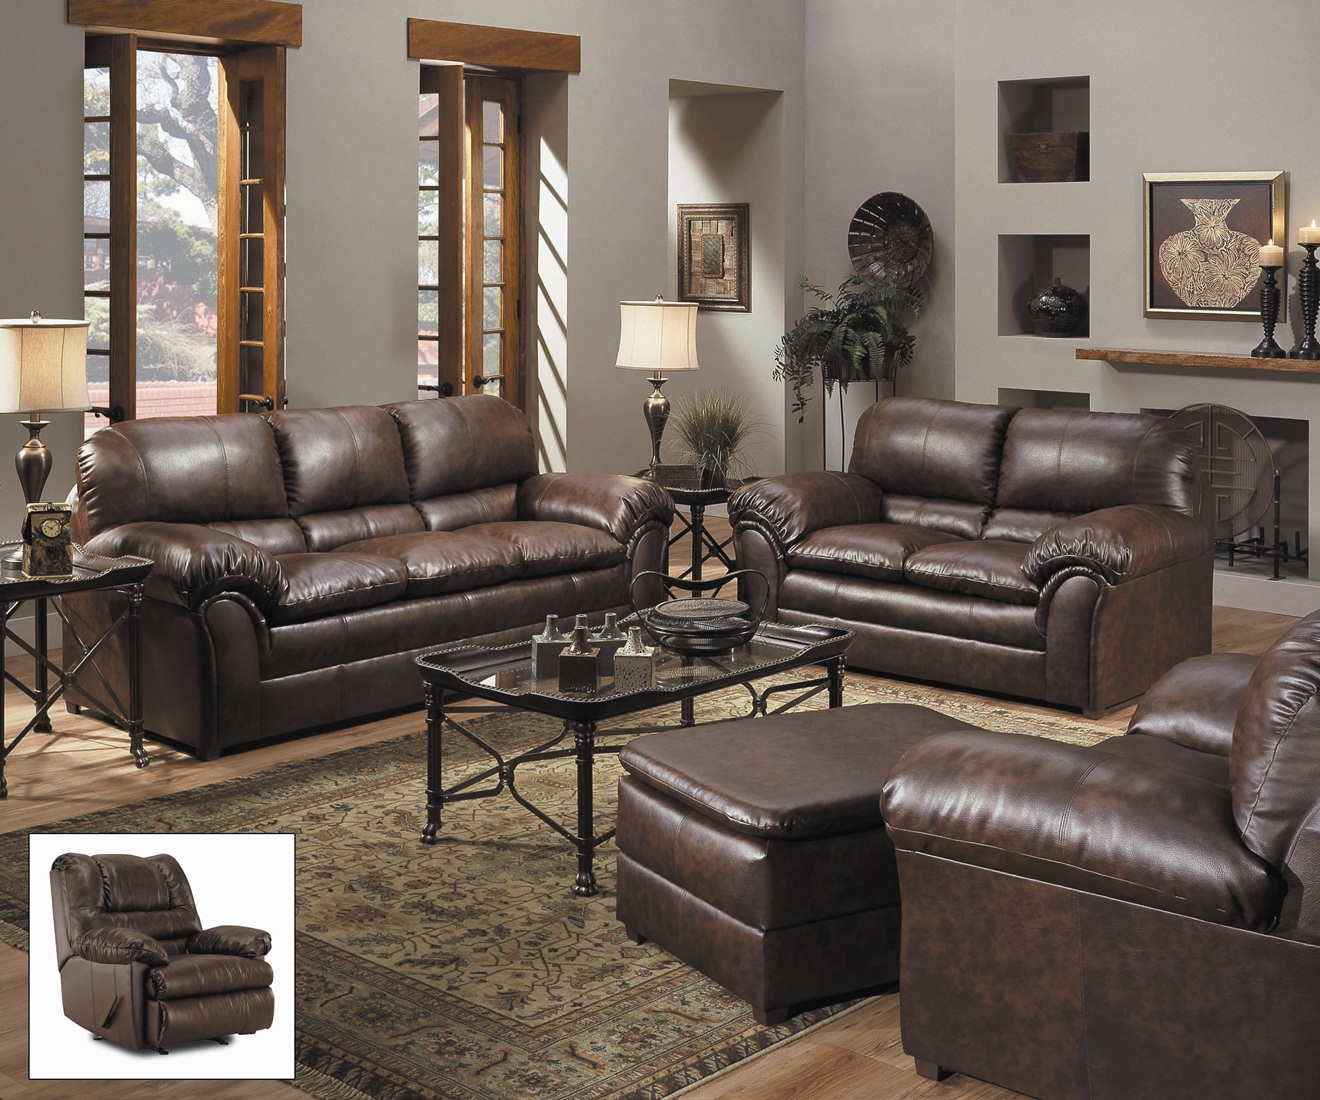 Geneva classic brown bonded leather living room furniture for Couch living room furniture